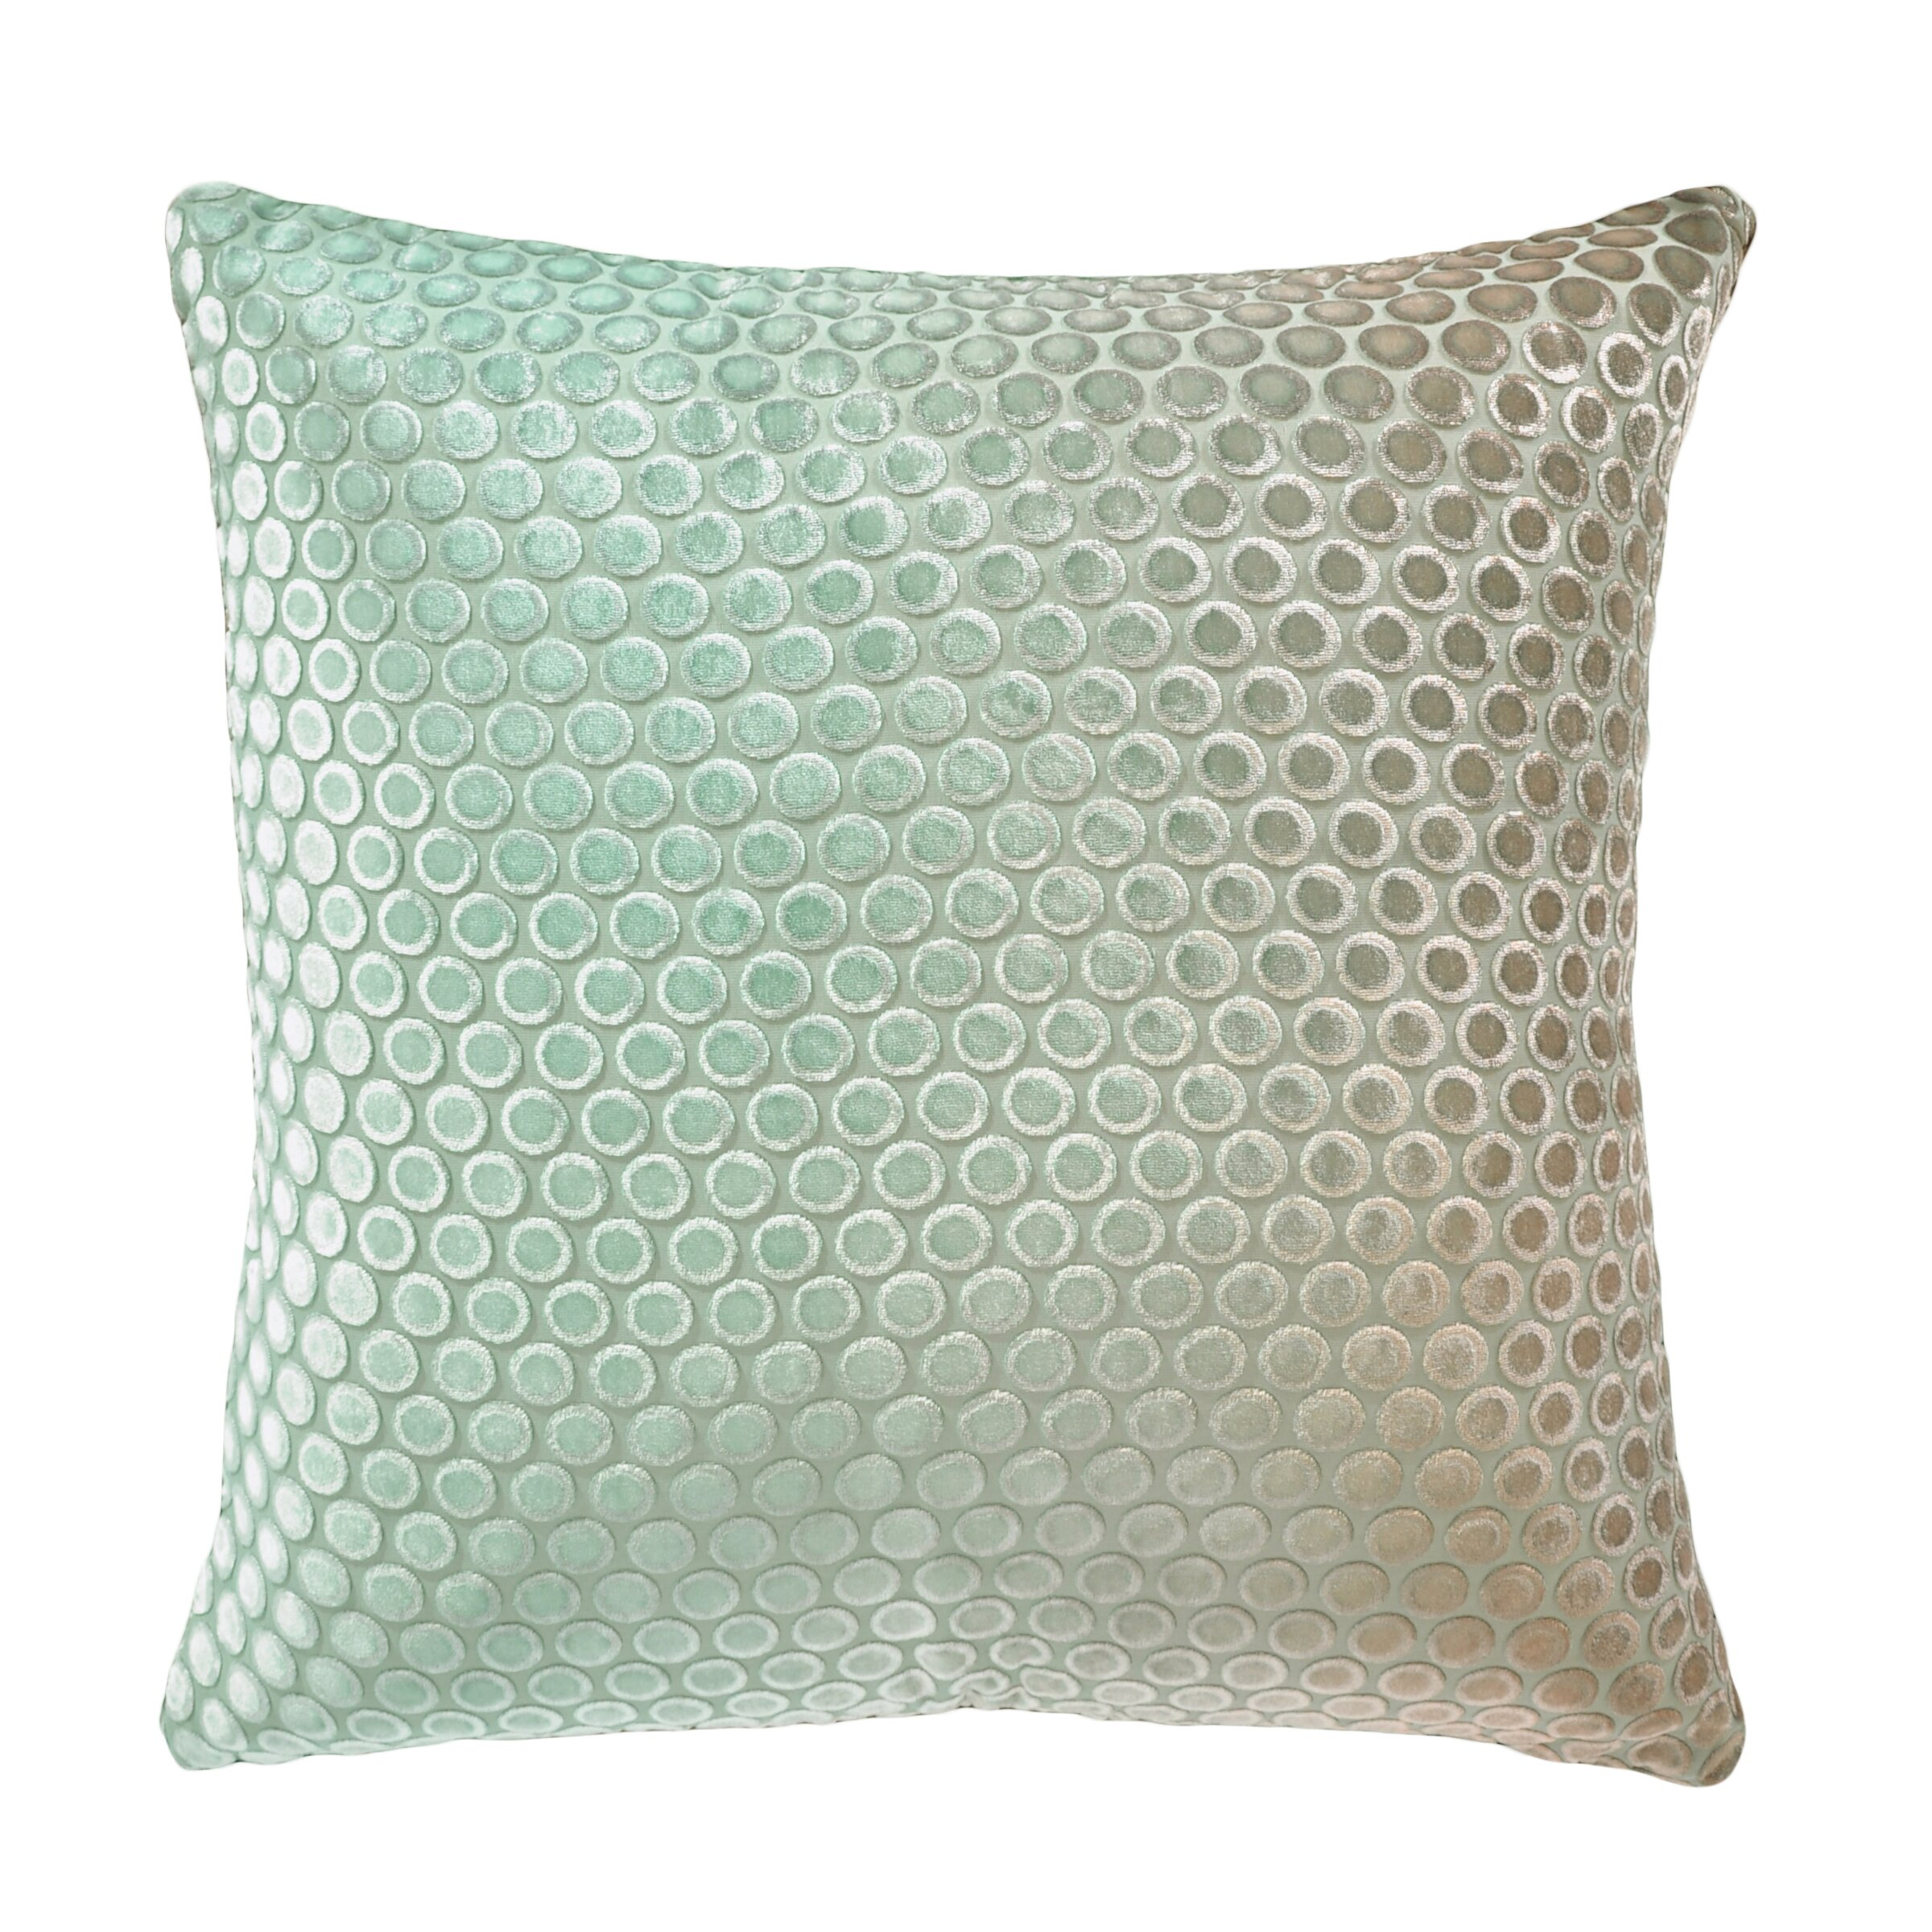 Max Studio Home Decorative Pillows : max studio home decorative pillow - 28 images - max studio home decorative pillow 28 images max ...